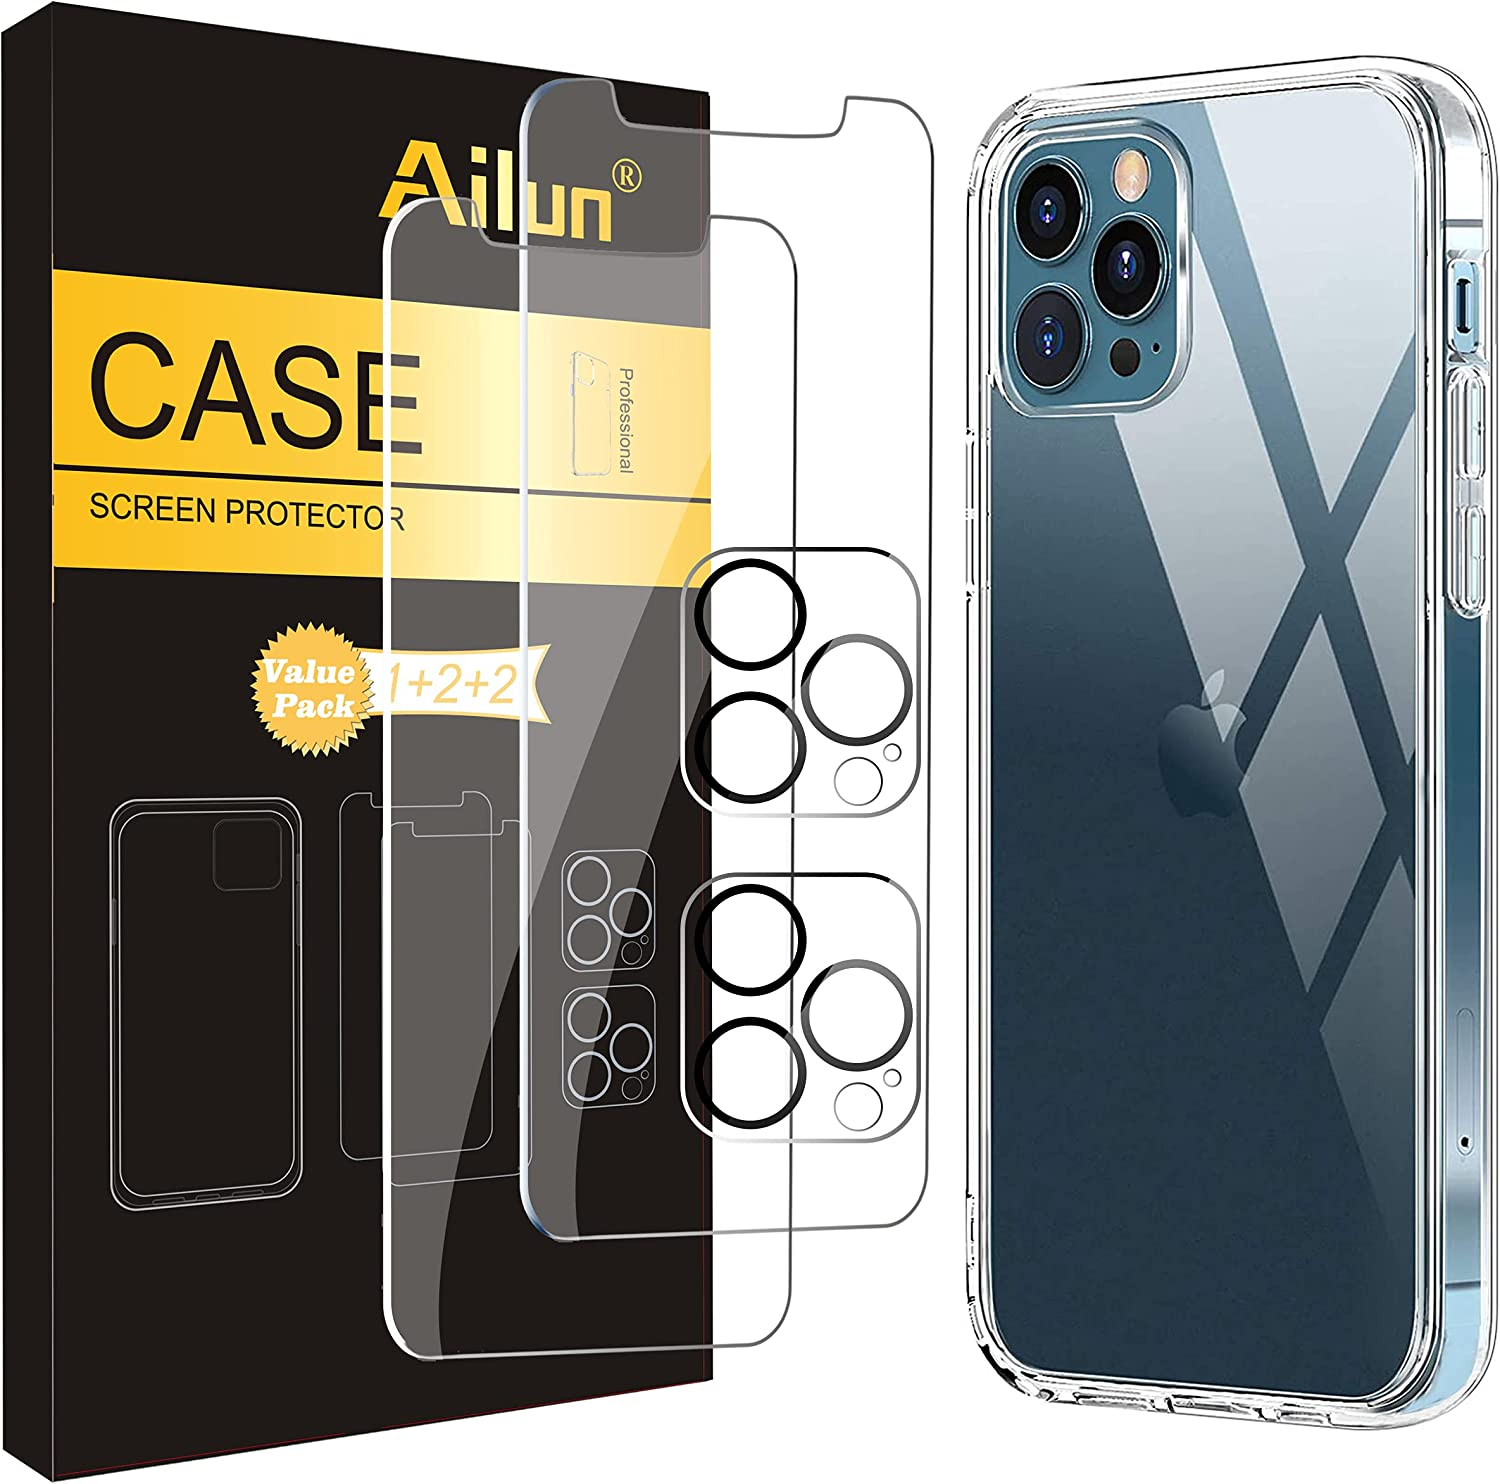 Ailun Case Compatible for iPhone 12 Pro Max[6.7 inch] with [2 x Glass Screen Protector + 2 Pack Camera Lens Protector] Shock Absorption Bumper TPU Clear Cover, Anti Scratch/Fingerprint/Oil Stain Back Cover Crystal Clear